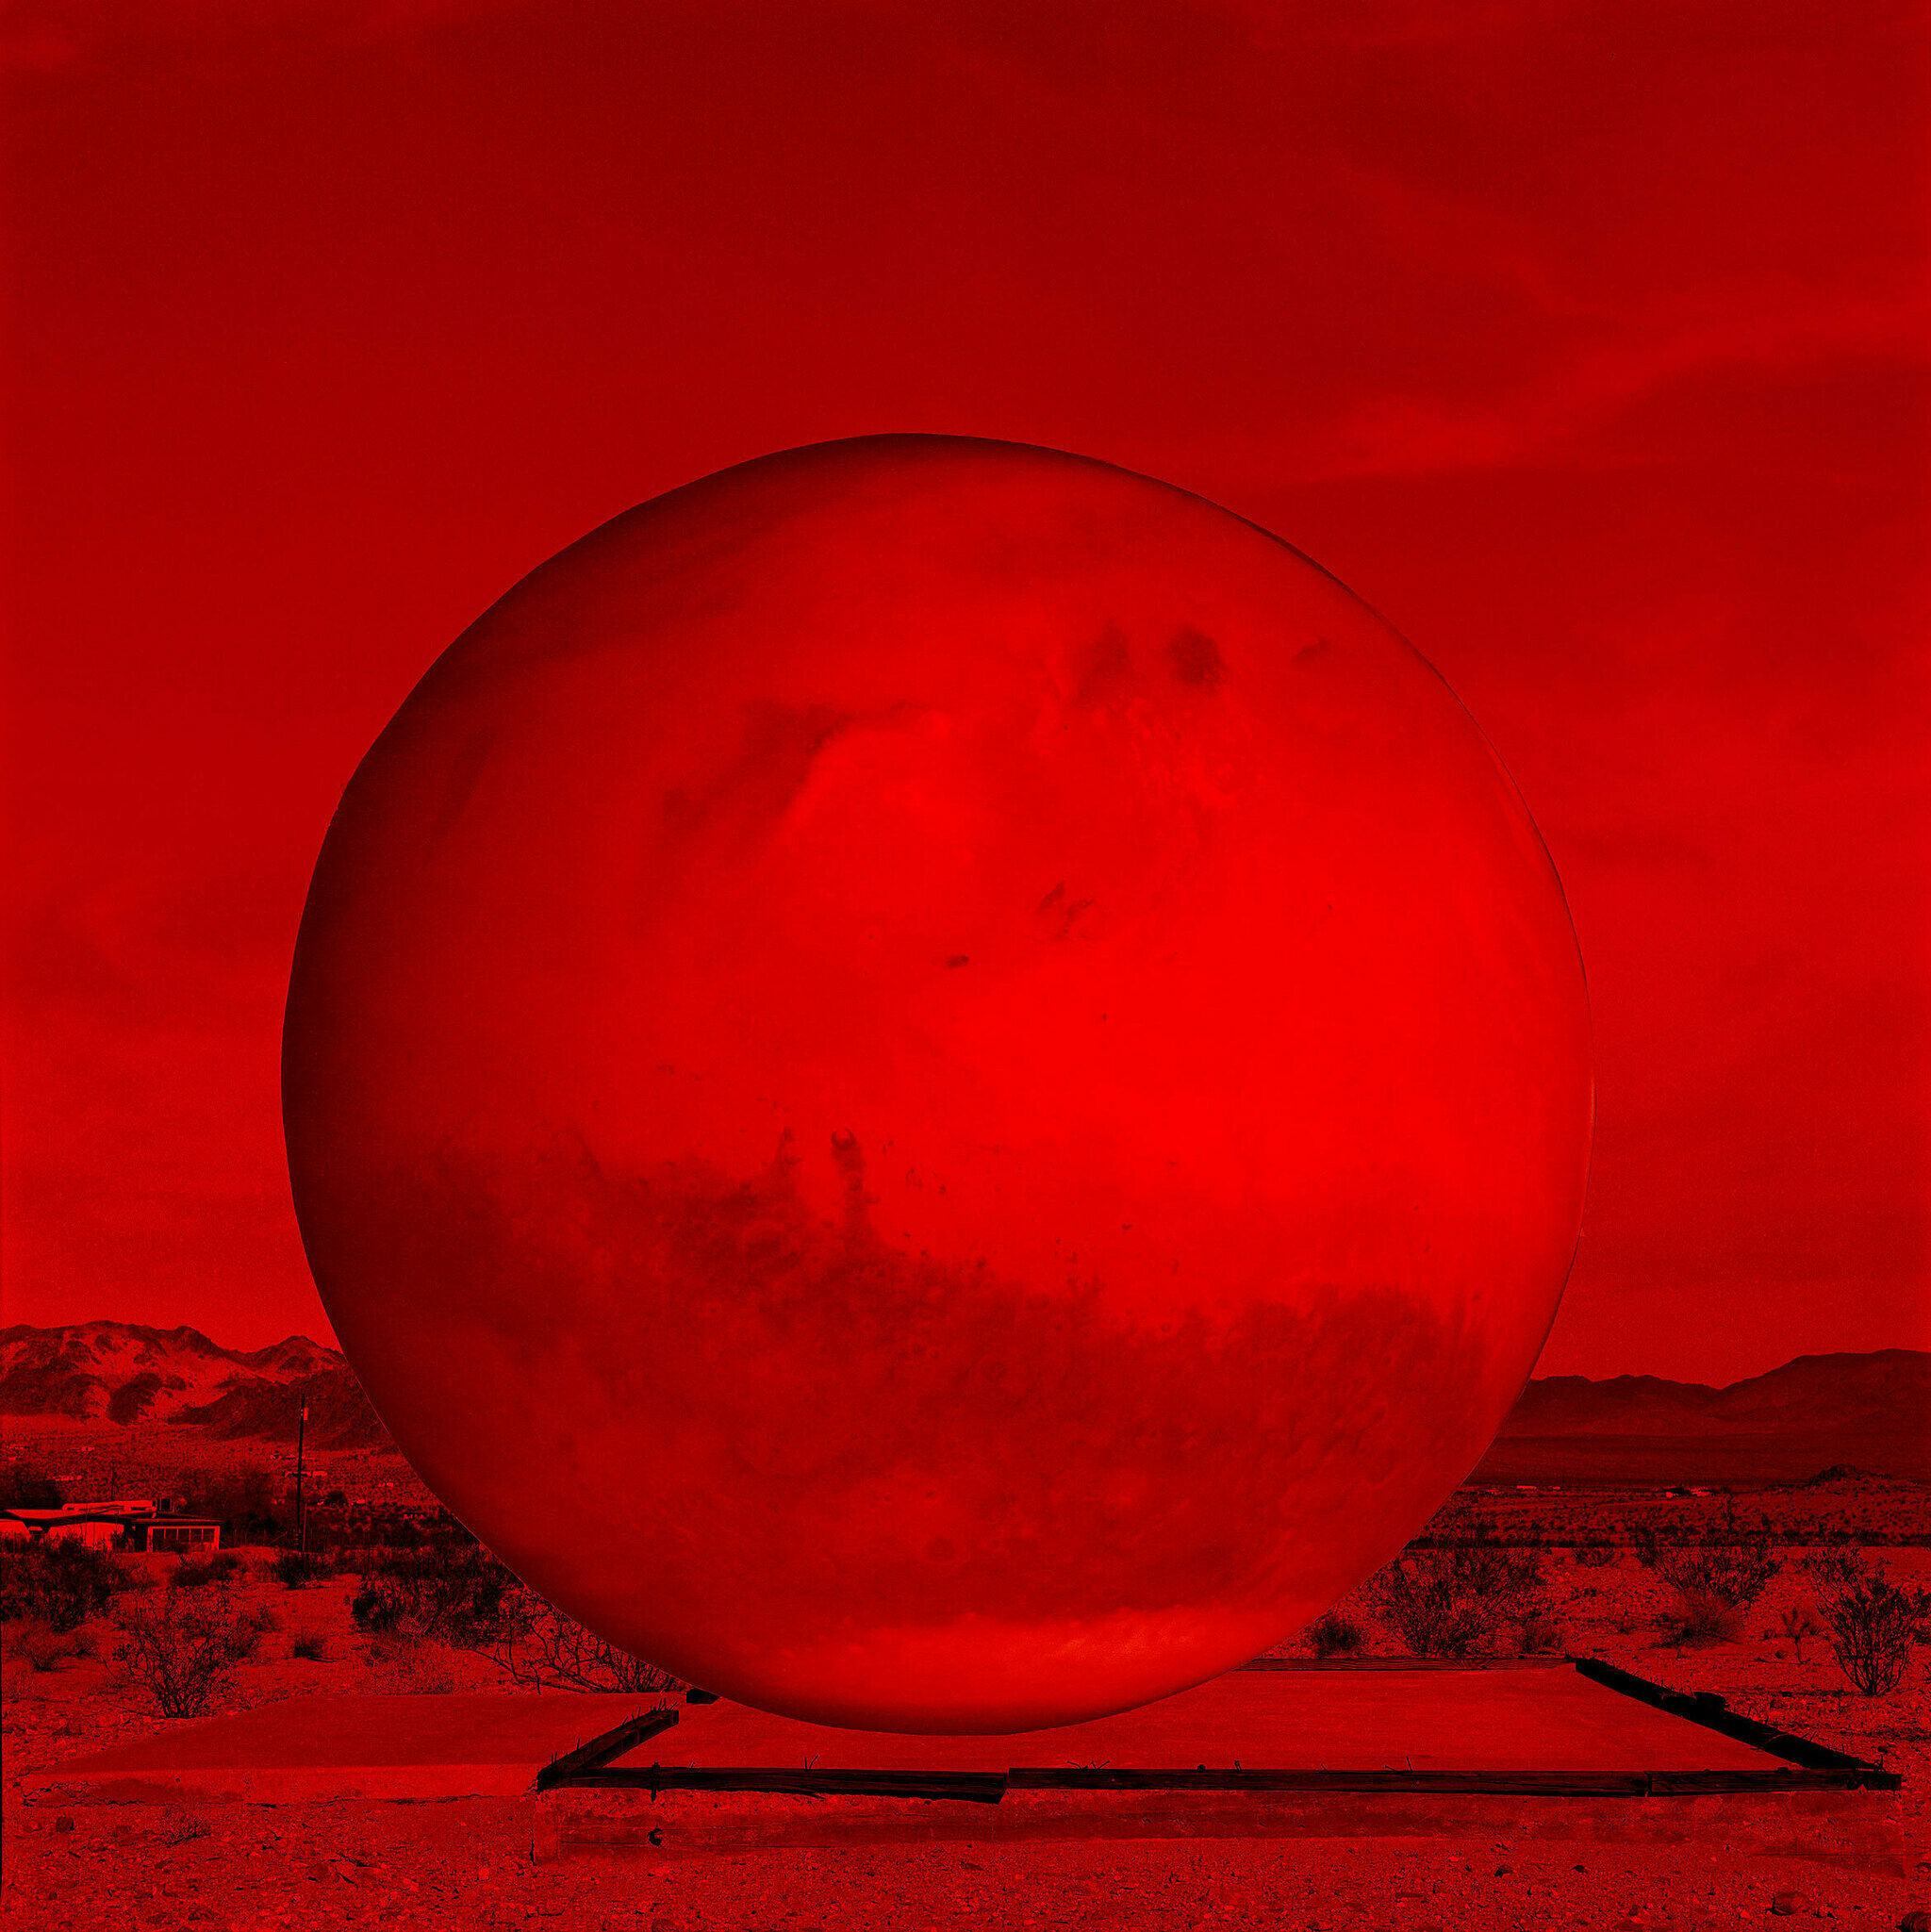 A work by artist MPA. The planet Mars is depicted on a platform